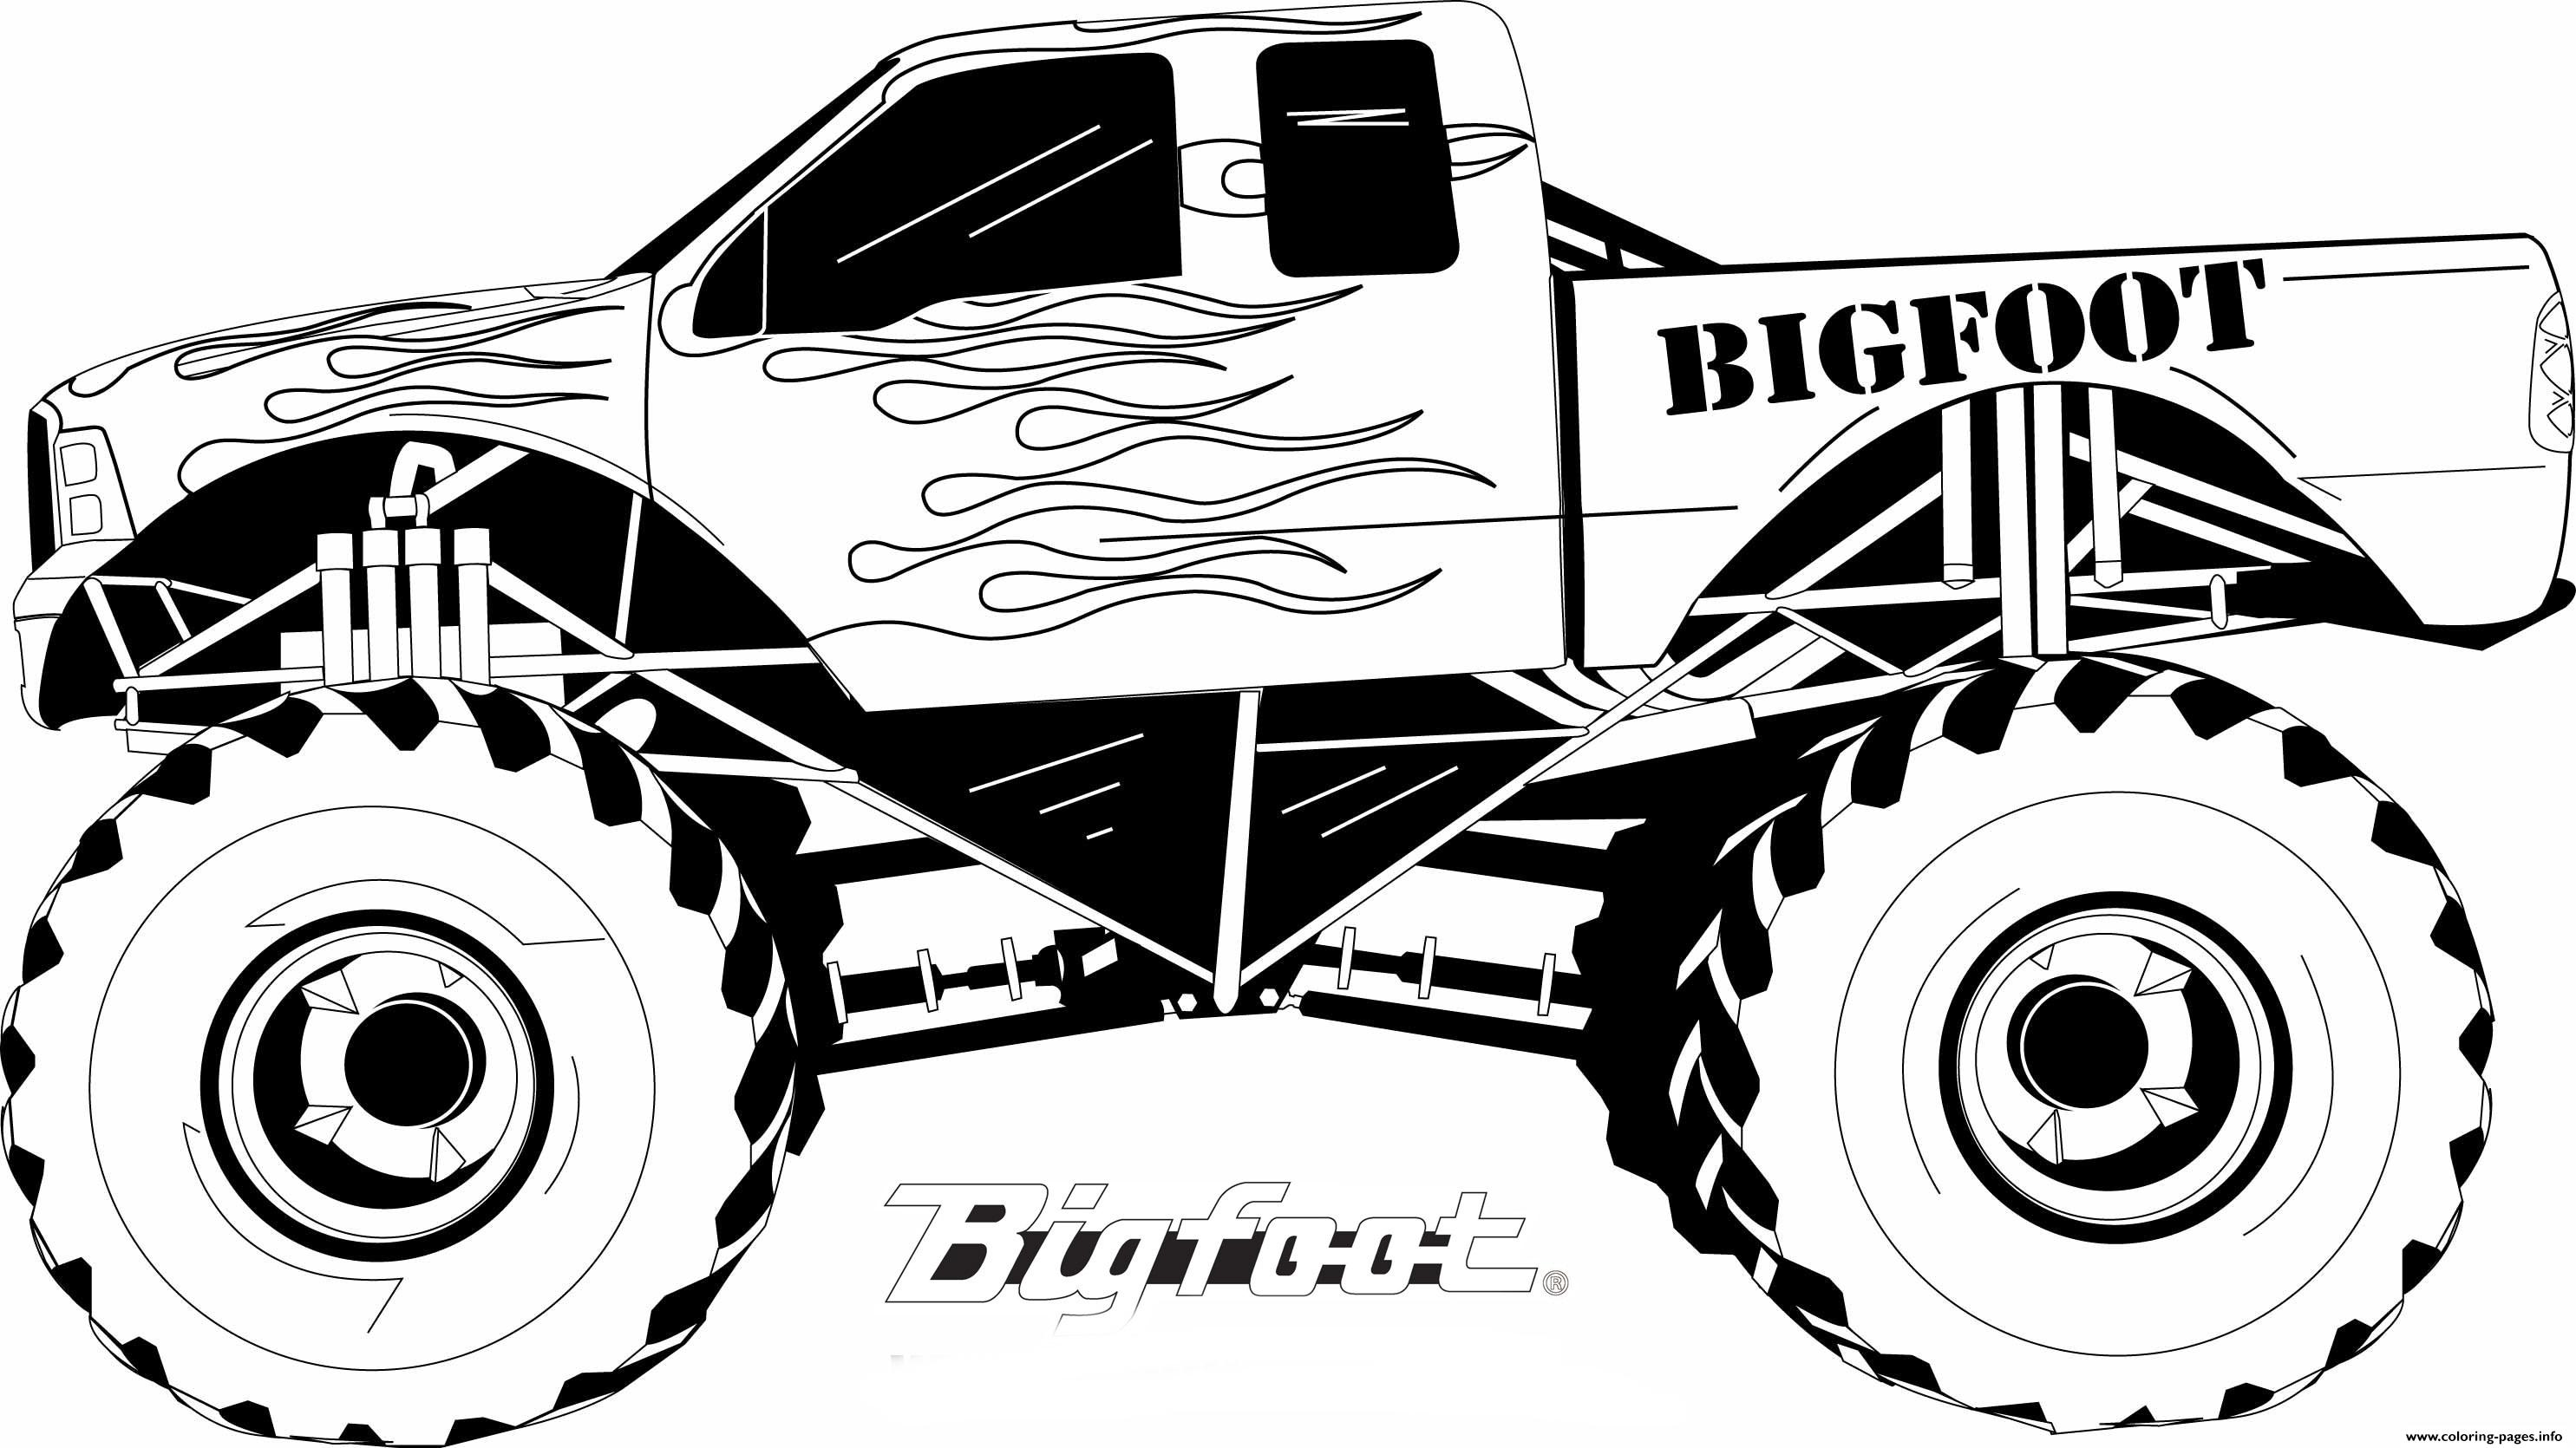 Monster Truck Bigfoot Big Foot Kids coloring pages